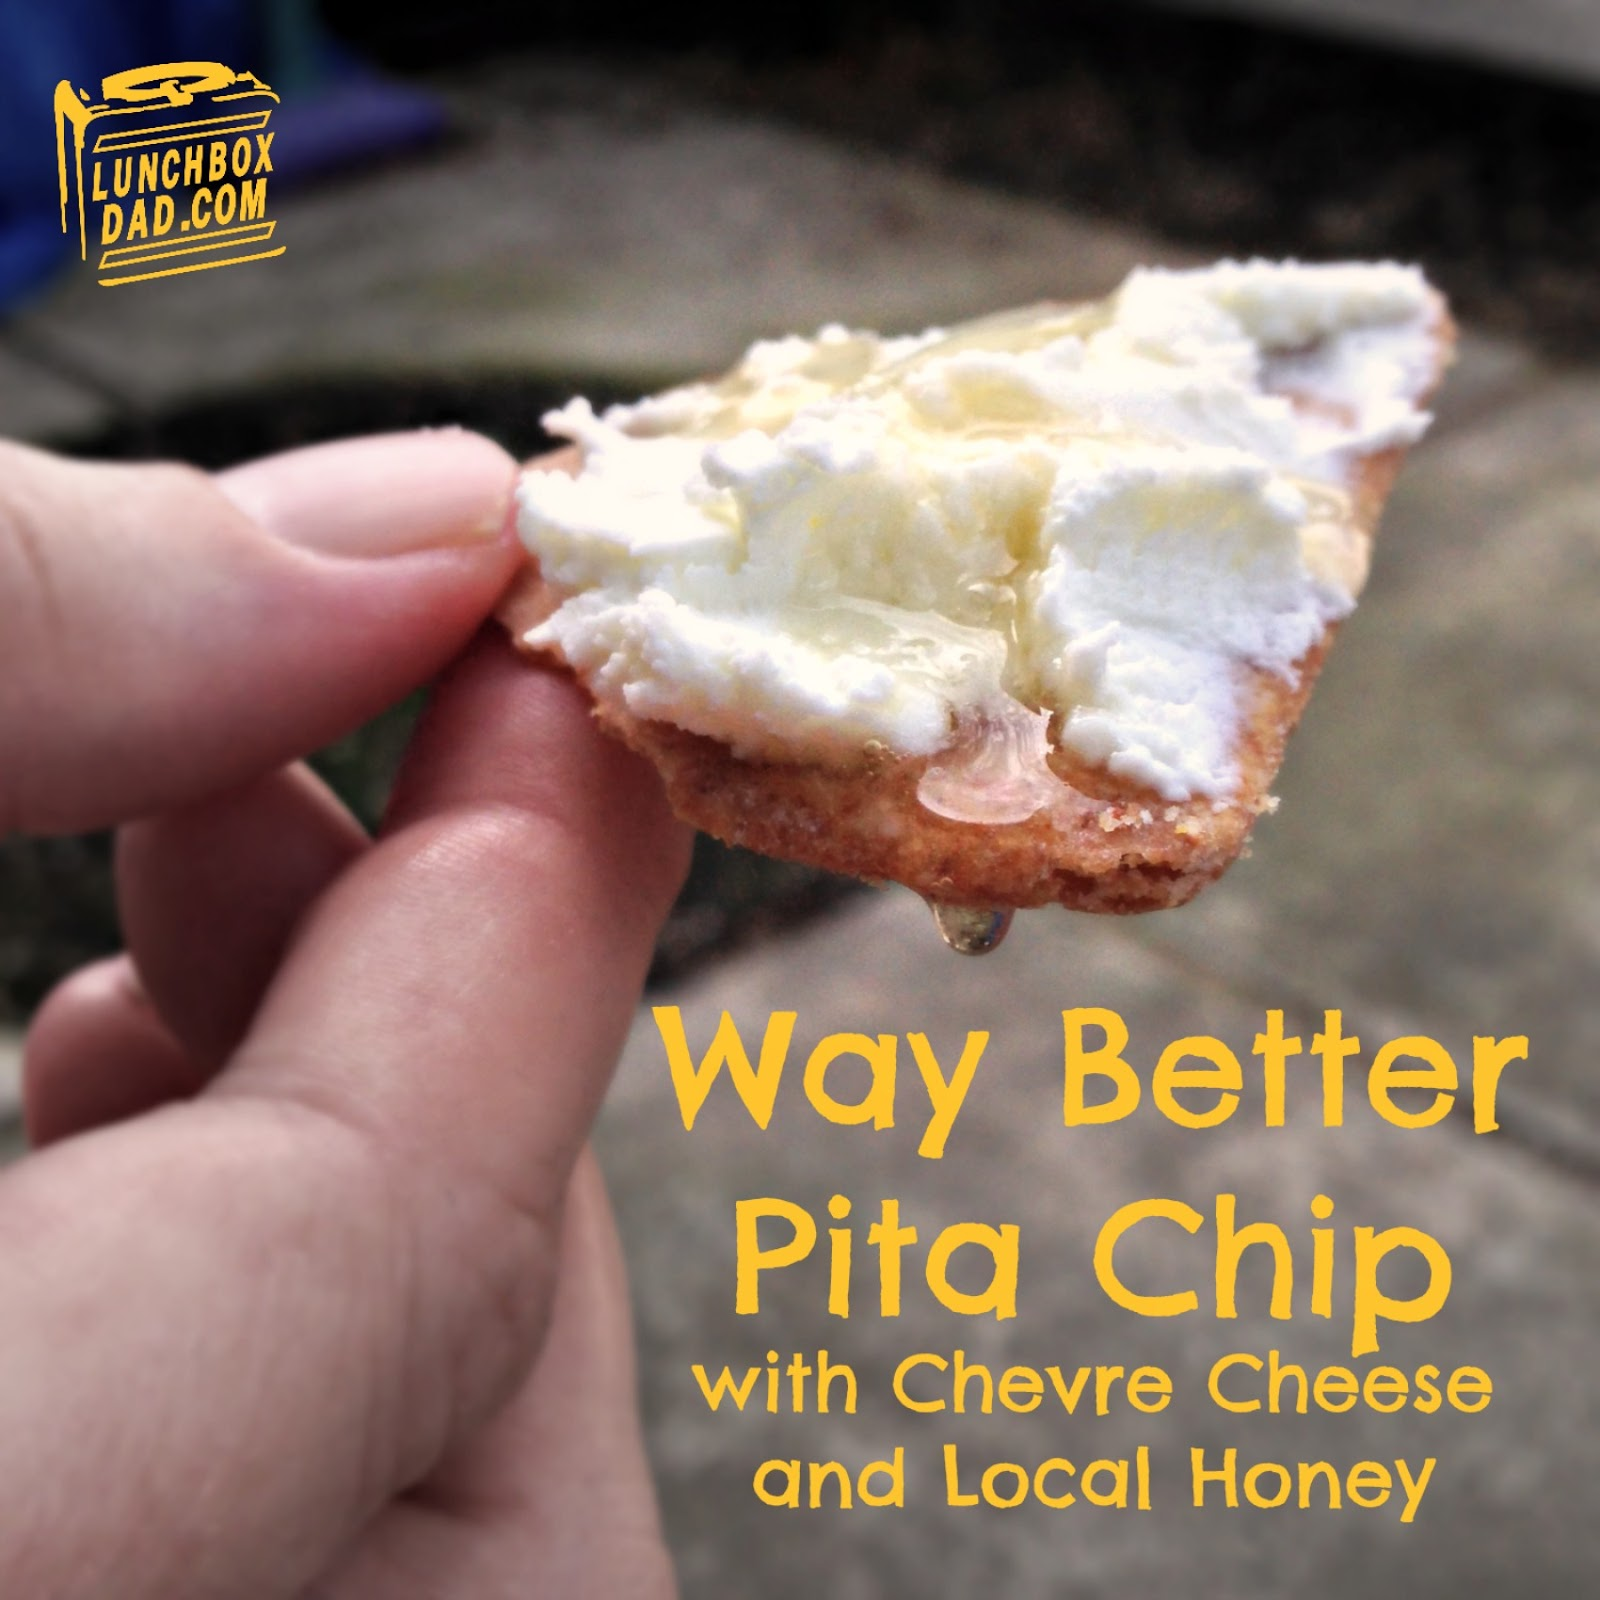 Way Better Pita Chip with Chevre cheese and honey review